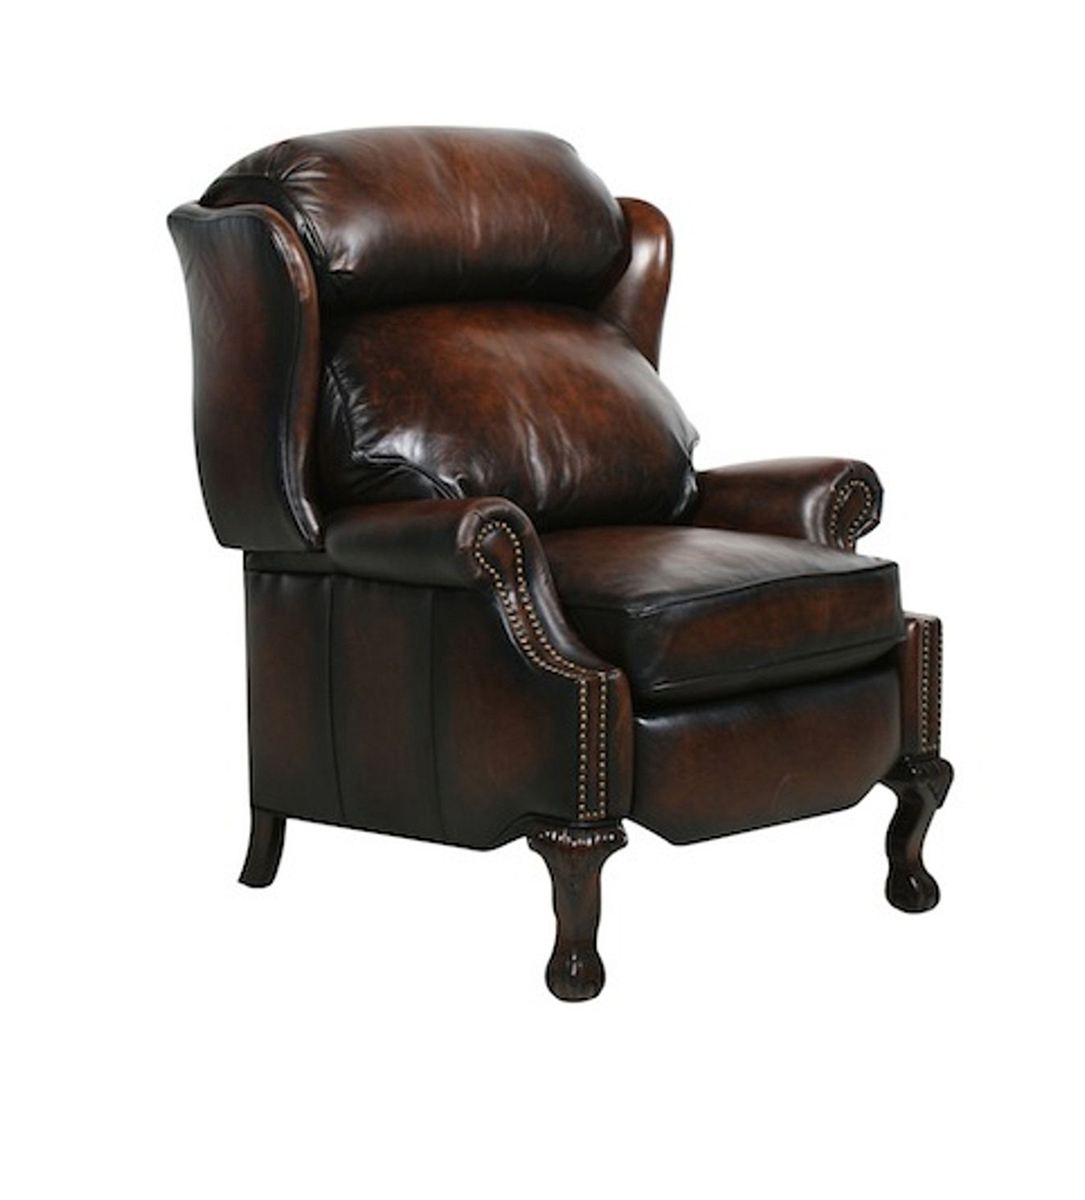 Barcalounger Churchill Recliner Chair - Stetson Coffee/All Leather